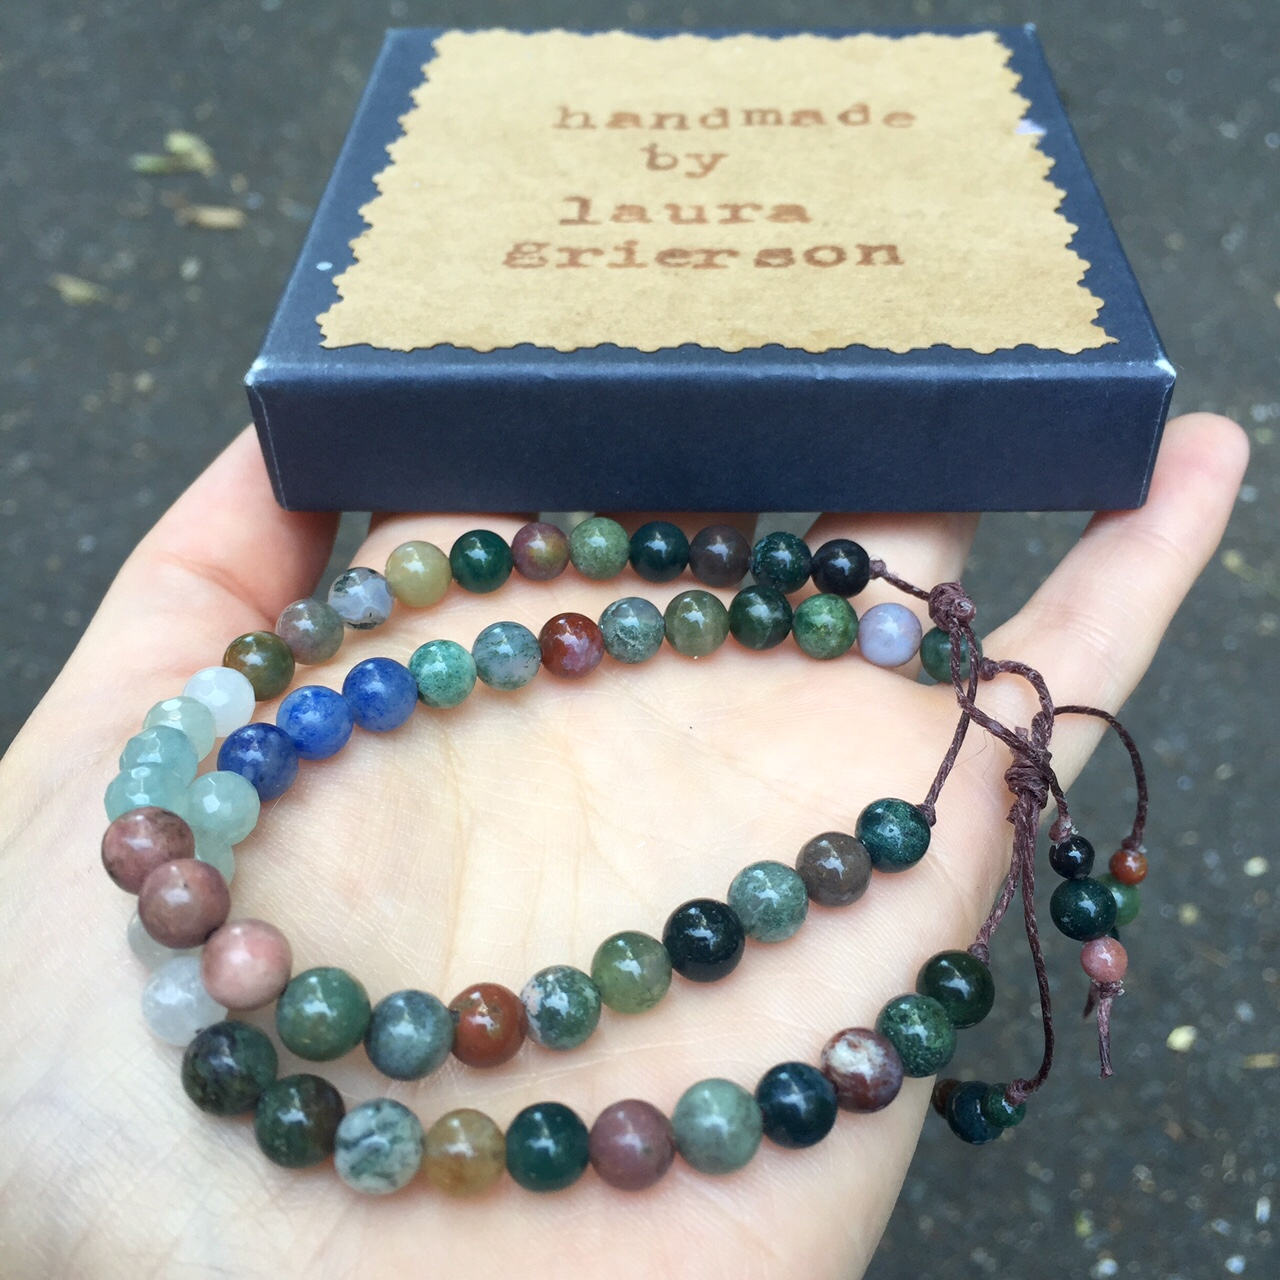 Fun Jewelry Finds On Etsy Vegan Beauty Review Vegan